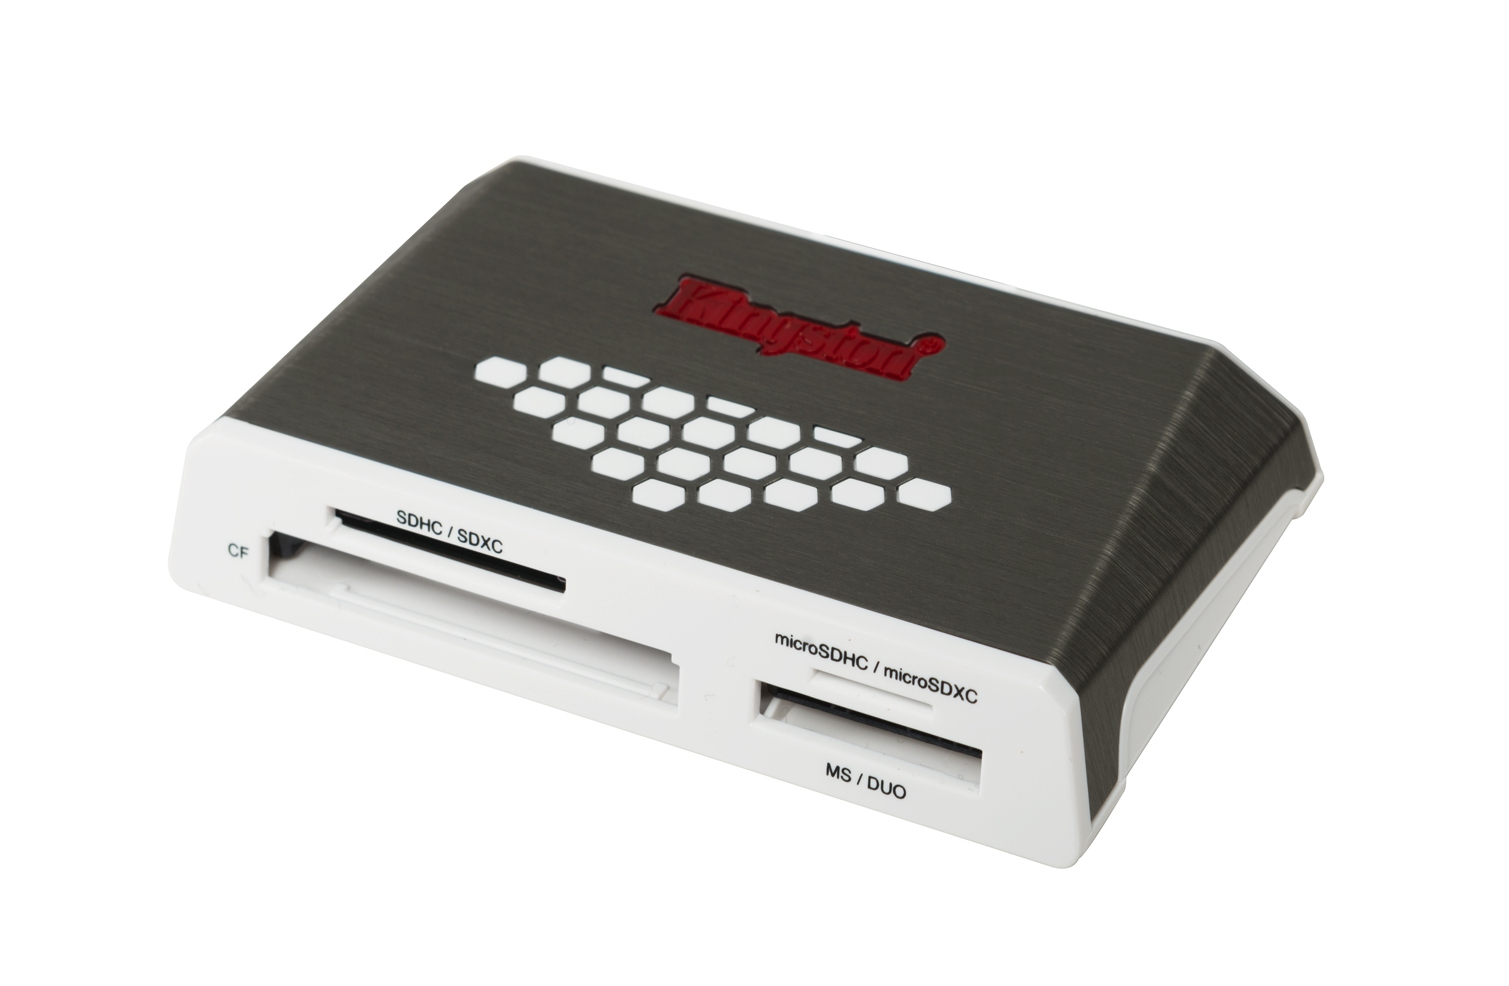 Kingston - Digital Media Product Usb 3.0 Hi-speed Media Reader                                        In Fcr-hs4